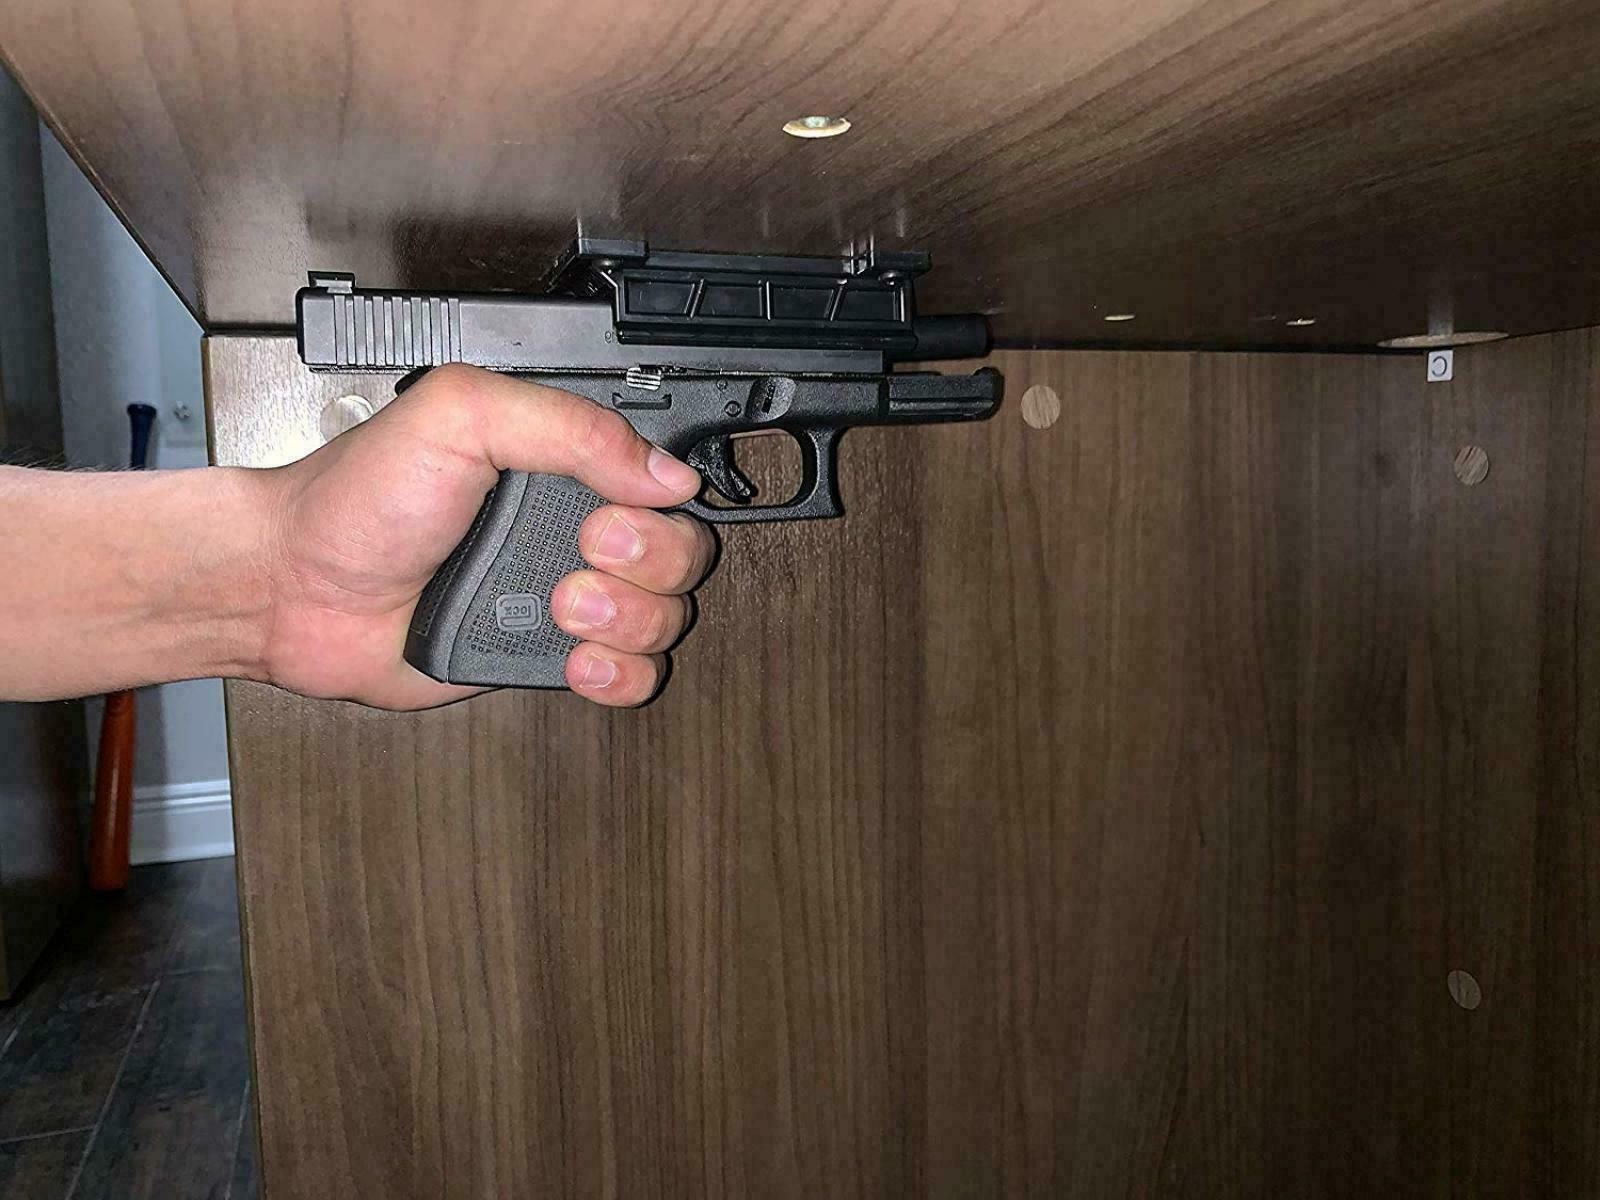 Phantom Quickdraw Gun Mount & Holster - Concealed Tactical